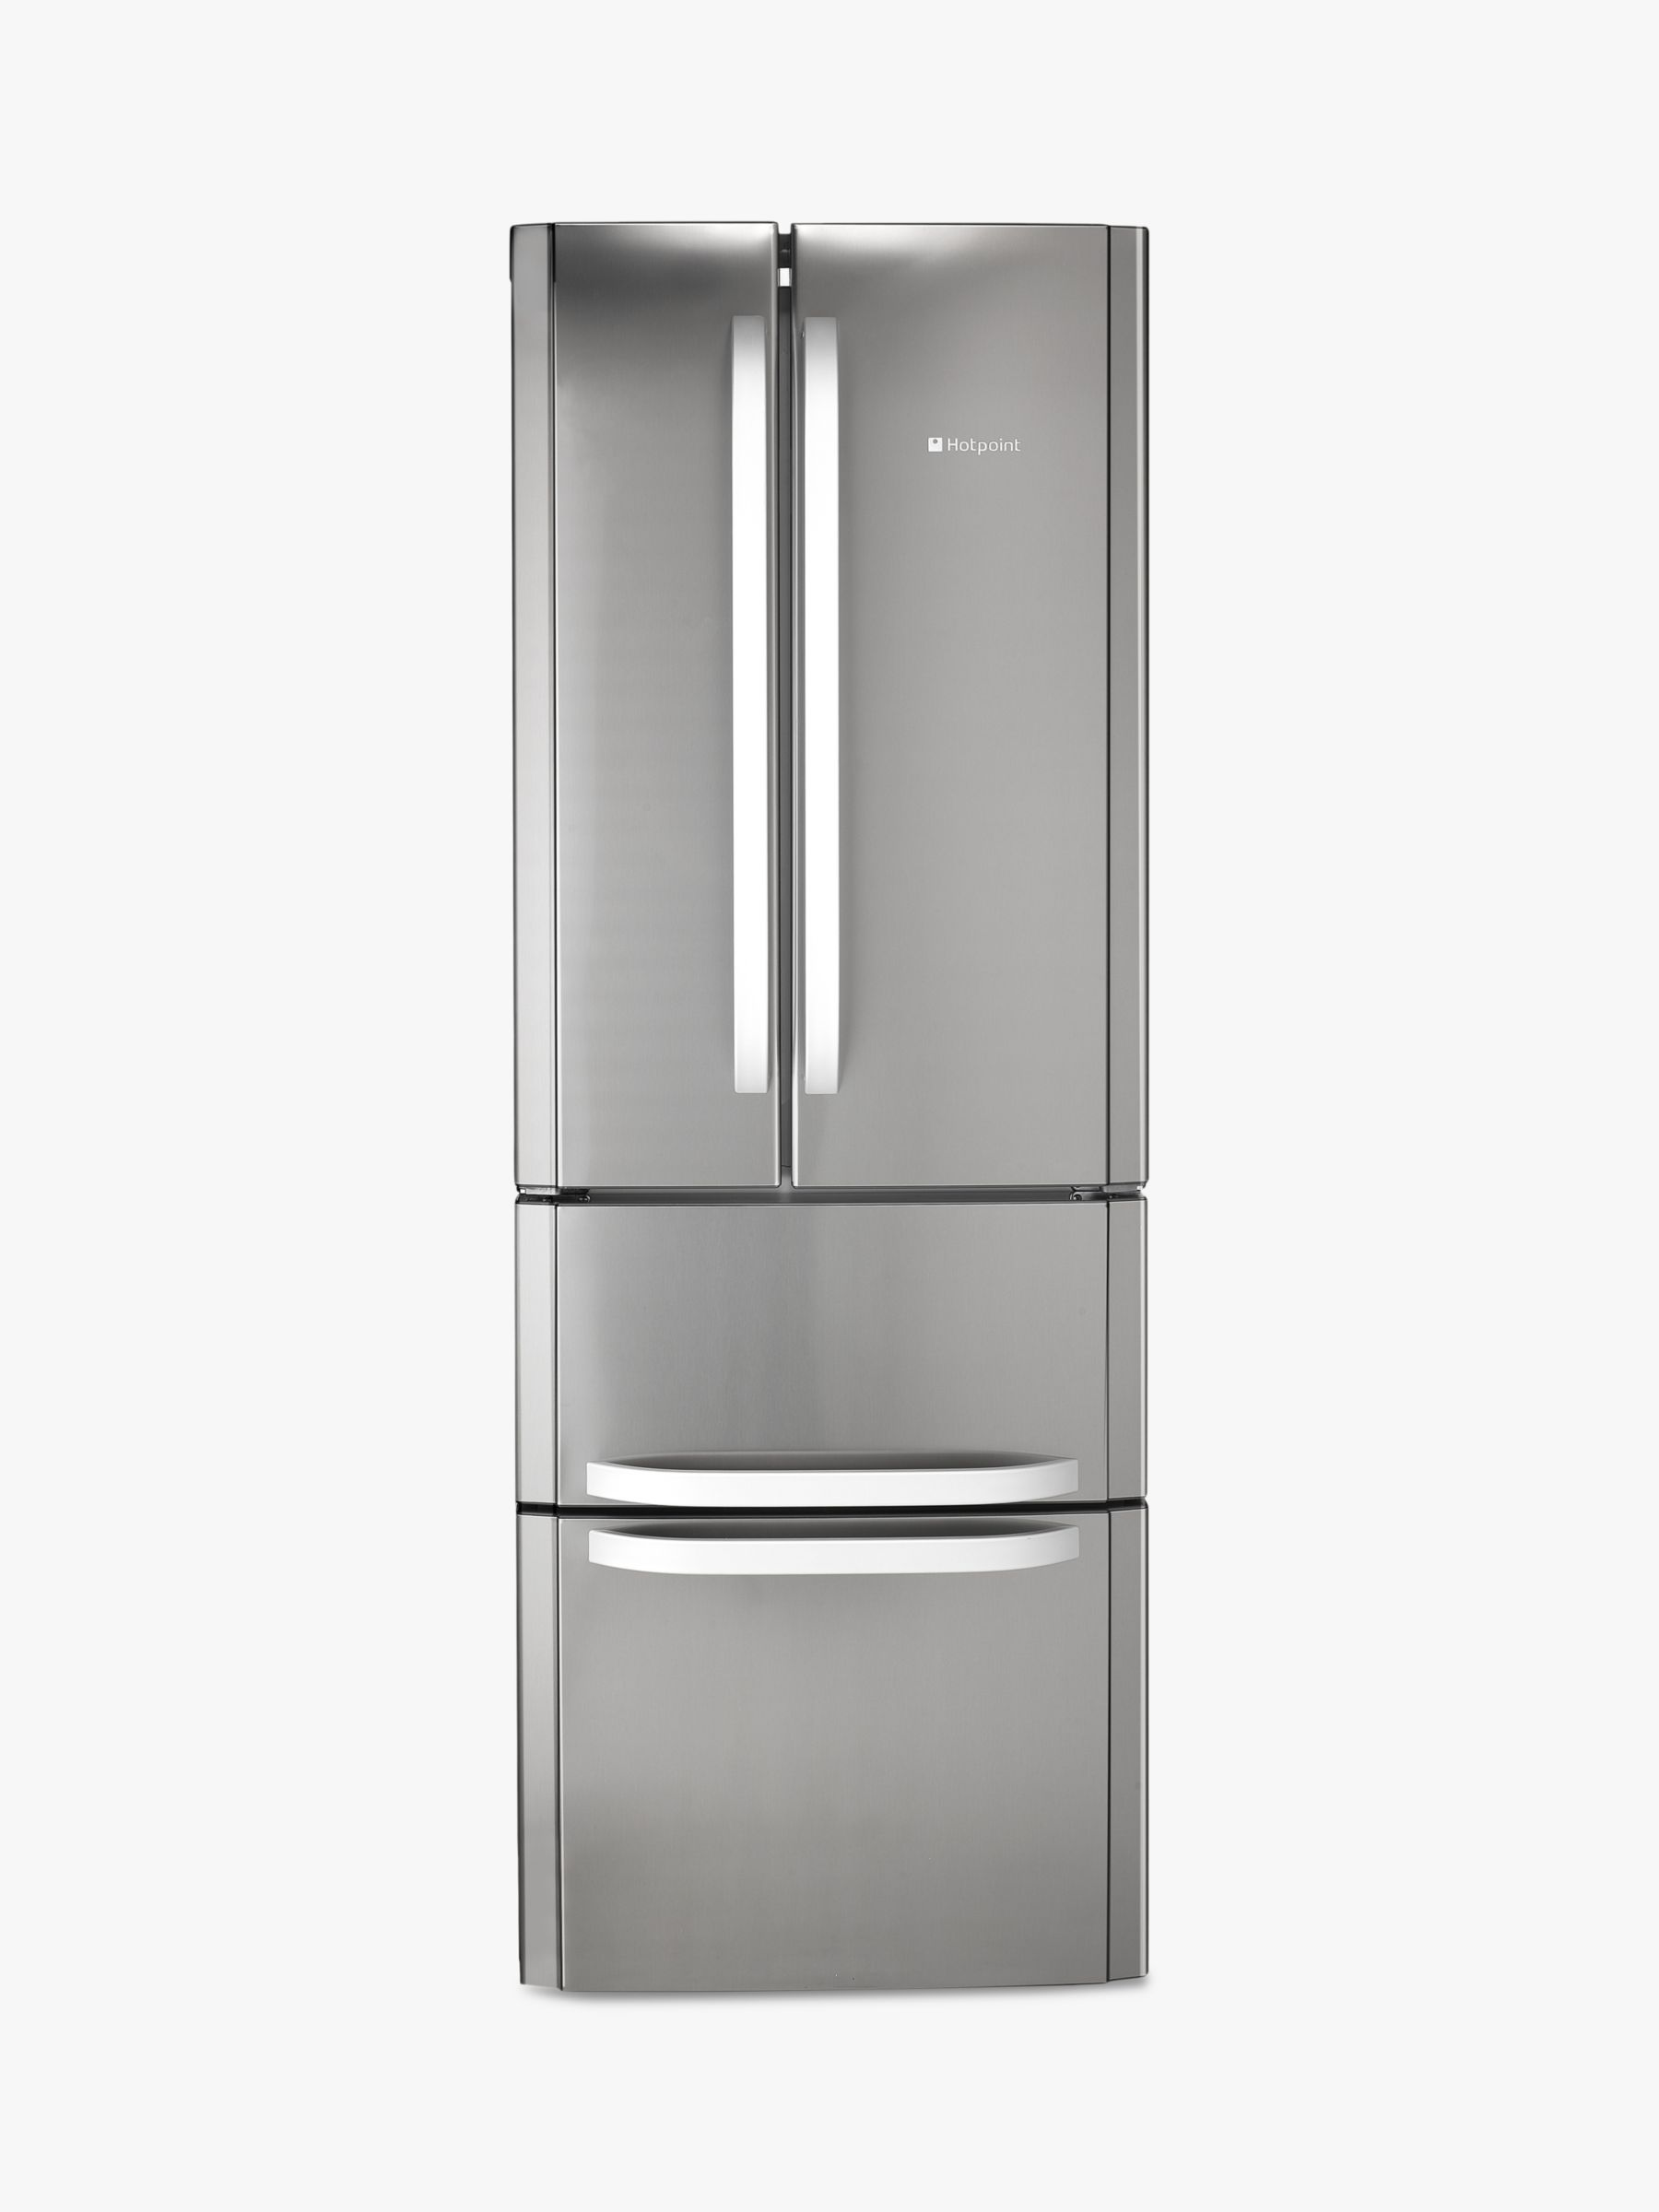 Hotpoint Hotpoint FFU4D.1 X American Style Freestanding Fridge Freezer, A+ Energy Rating, 70cm Wide, Stainless Steel